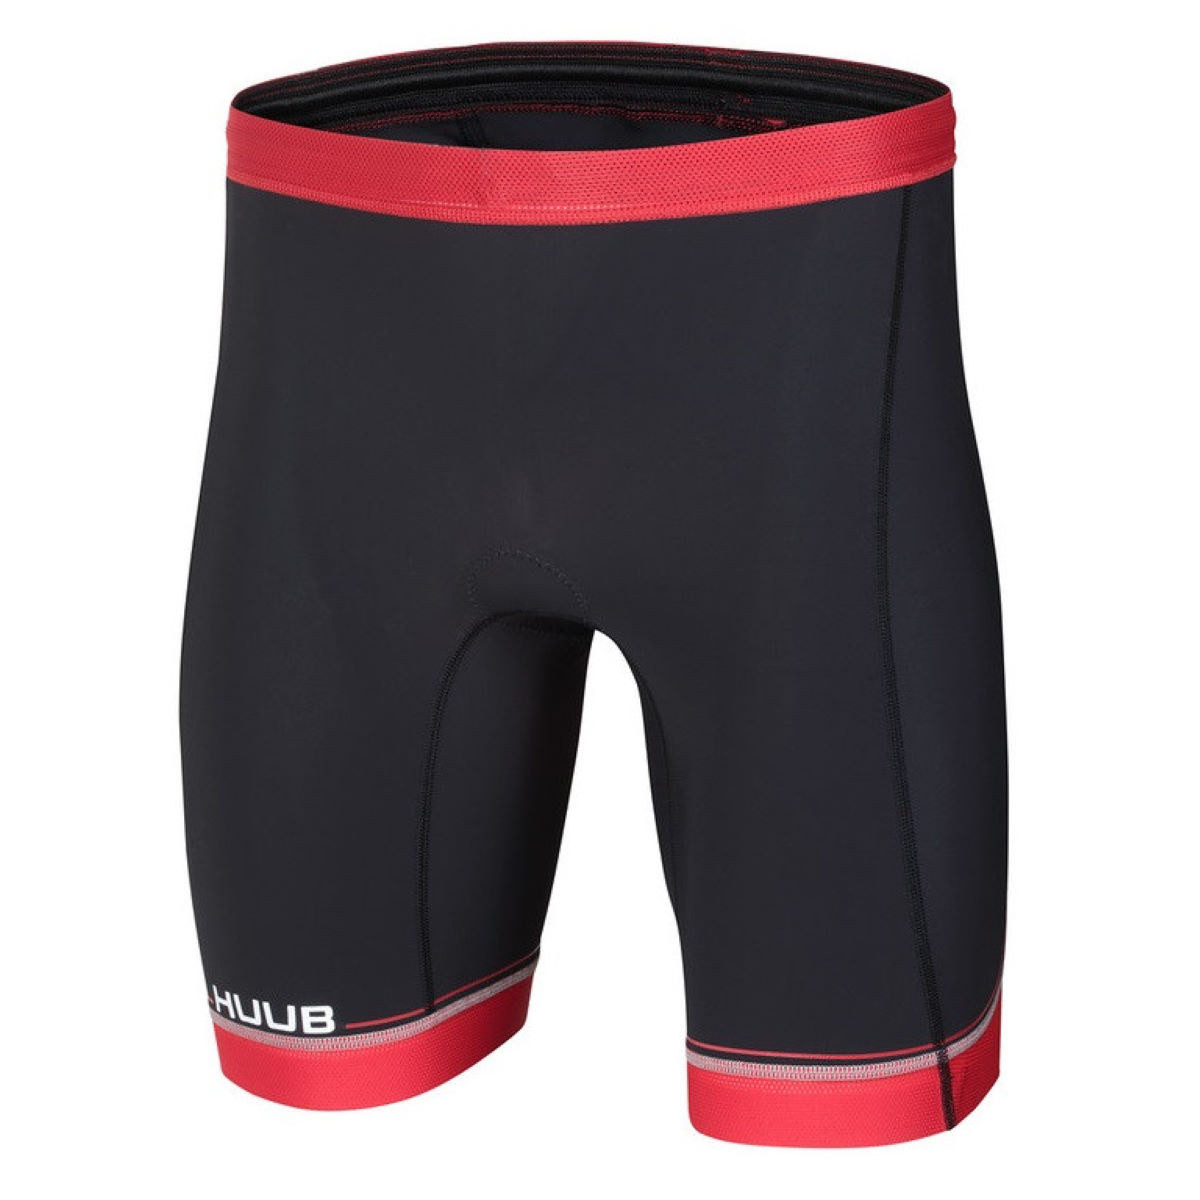 Cuissard court HUUB Core Tri - M Noir/Rouge Shorts de triathlon